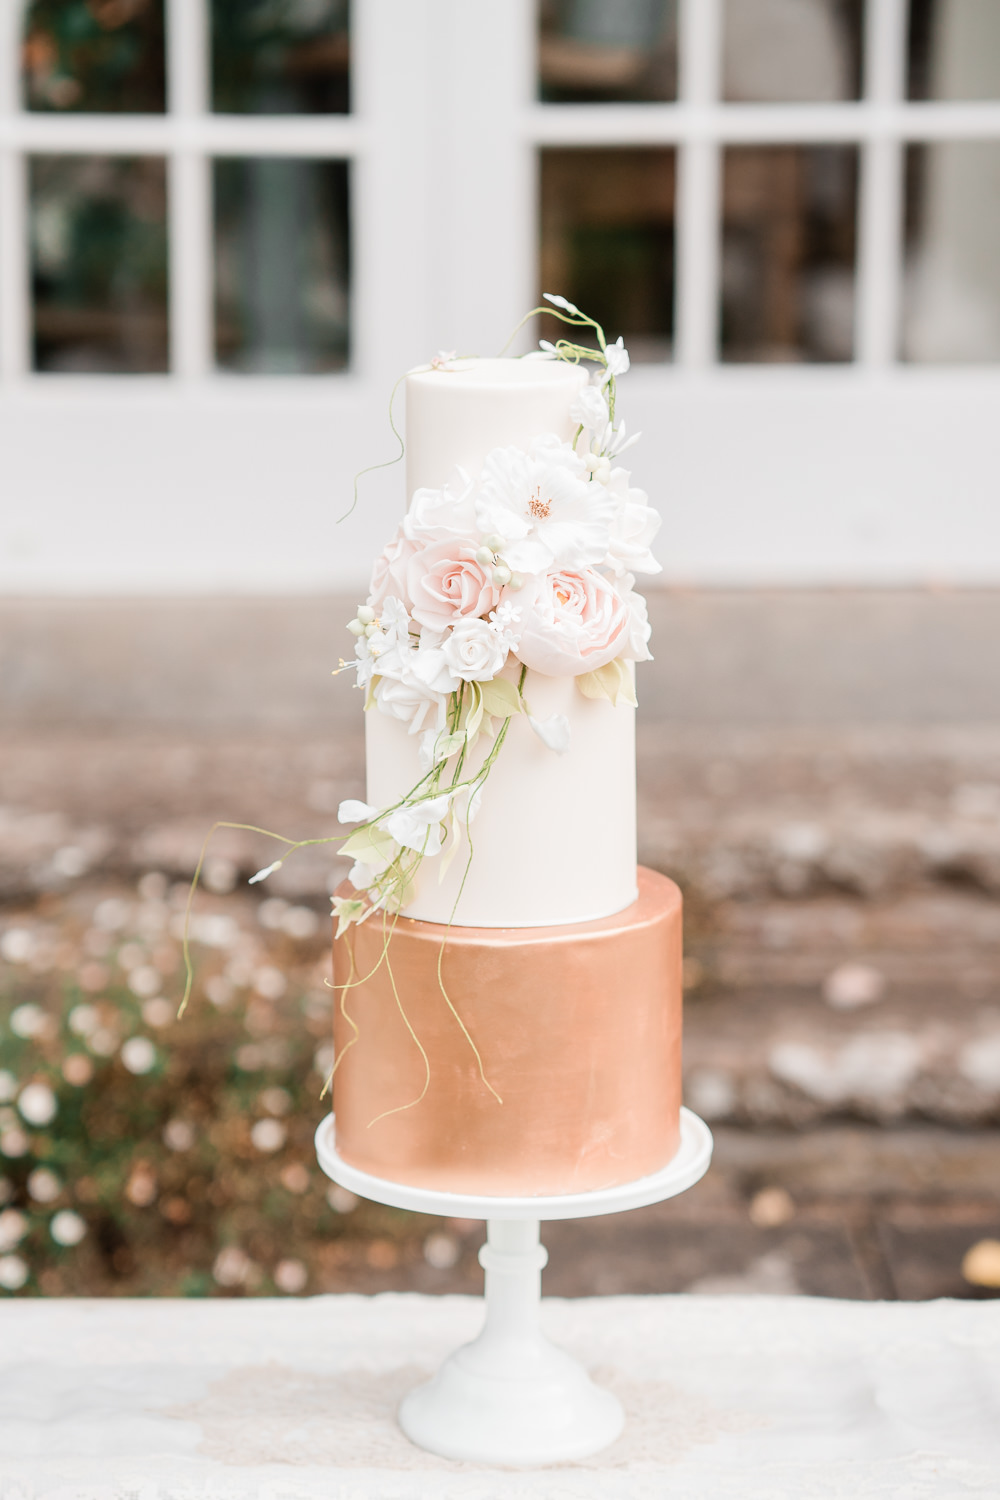 Metallic Cake Gold Copper Flowers Floral Pale Pink Golden Autumnal Wedding Ideas Joanna Briggs Photography